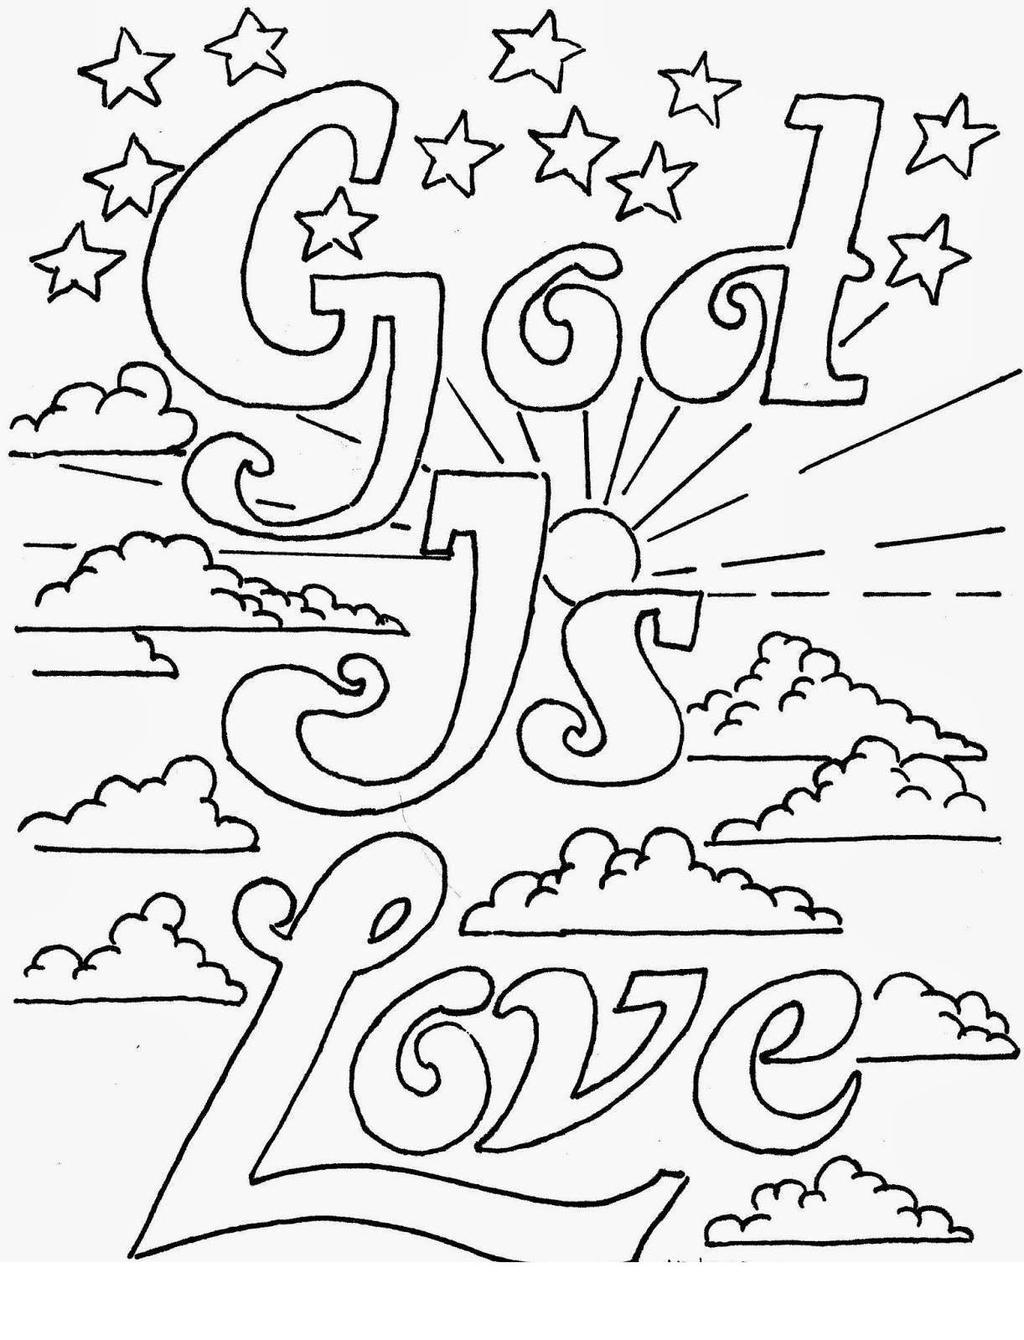 Jesus Loves Me Coloring Pages Beautiful Sketch - Free ...